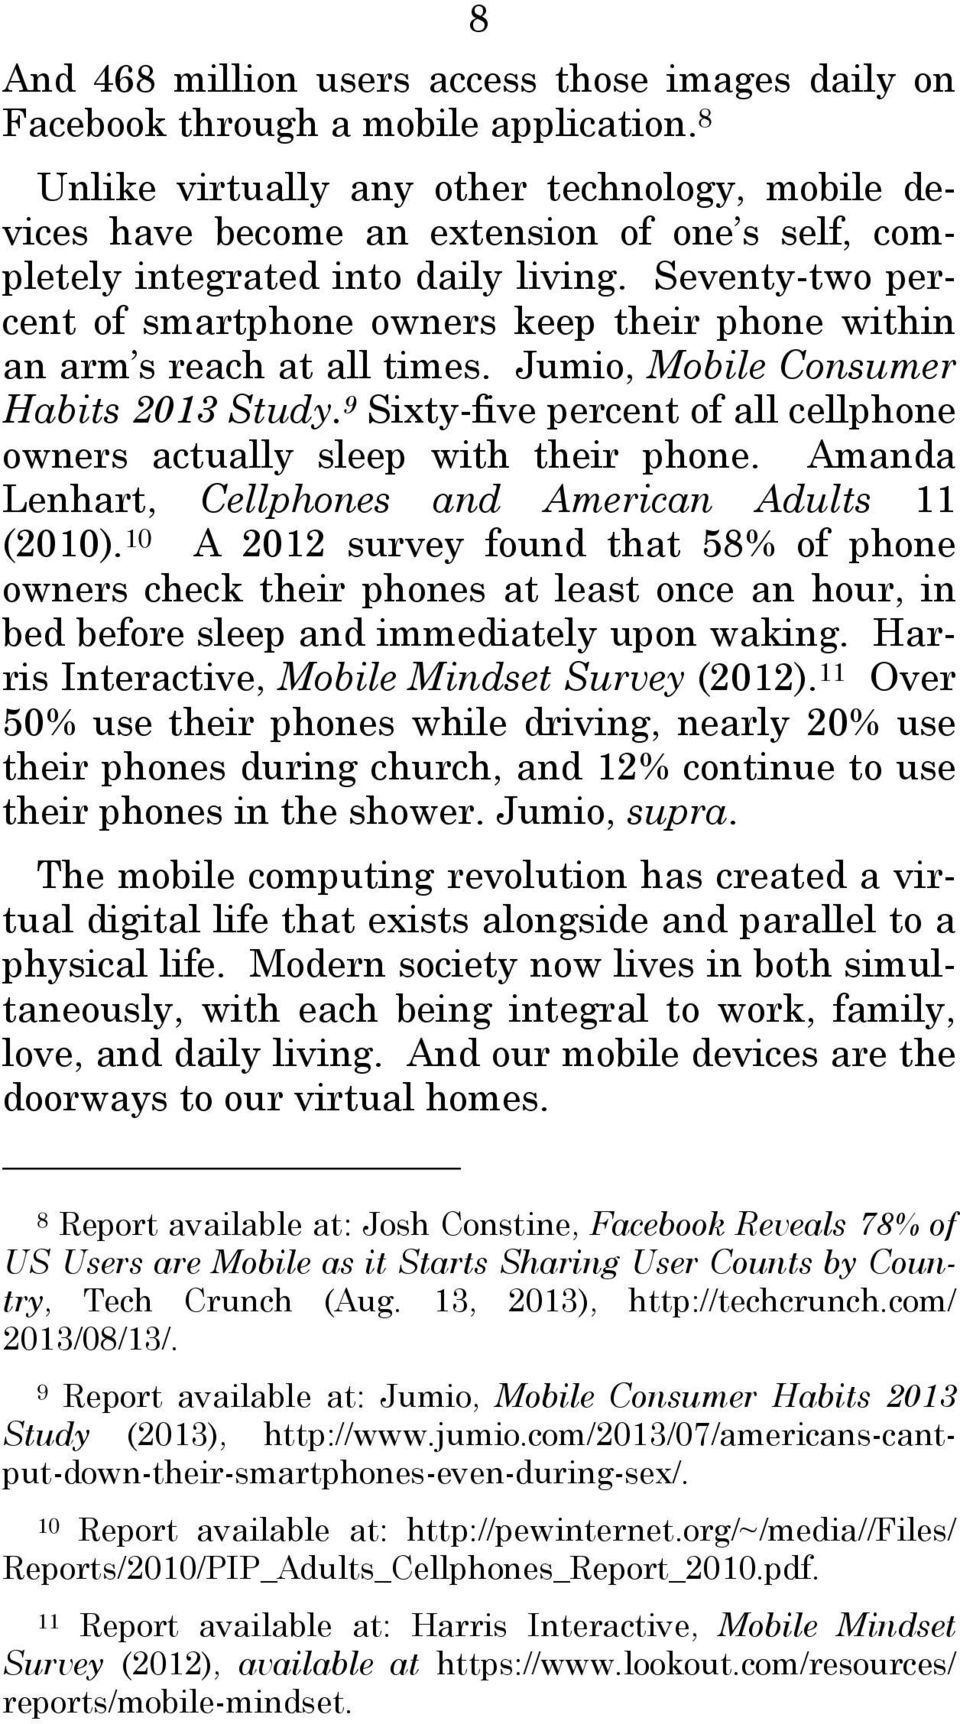 Seventy-two percent of smartphone owners keep their phone within an arm s reach at all times. Jumio, Mobile Consumer Habits 2013 Study.